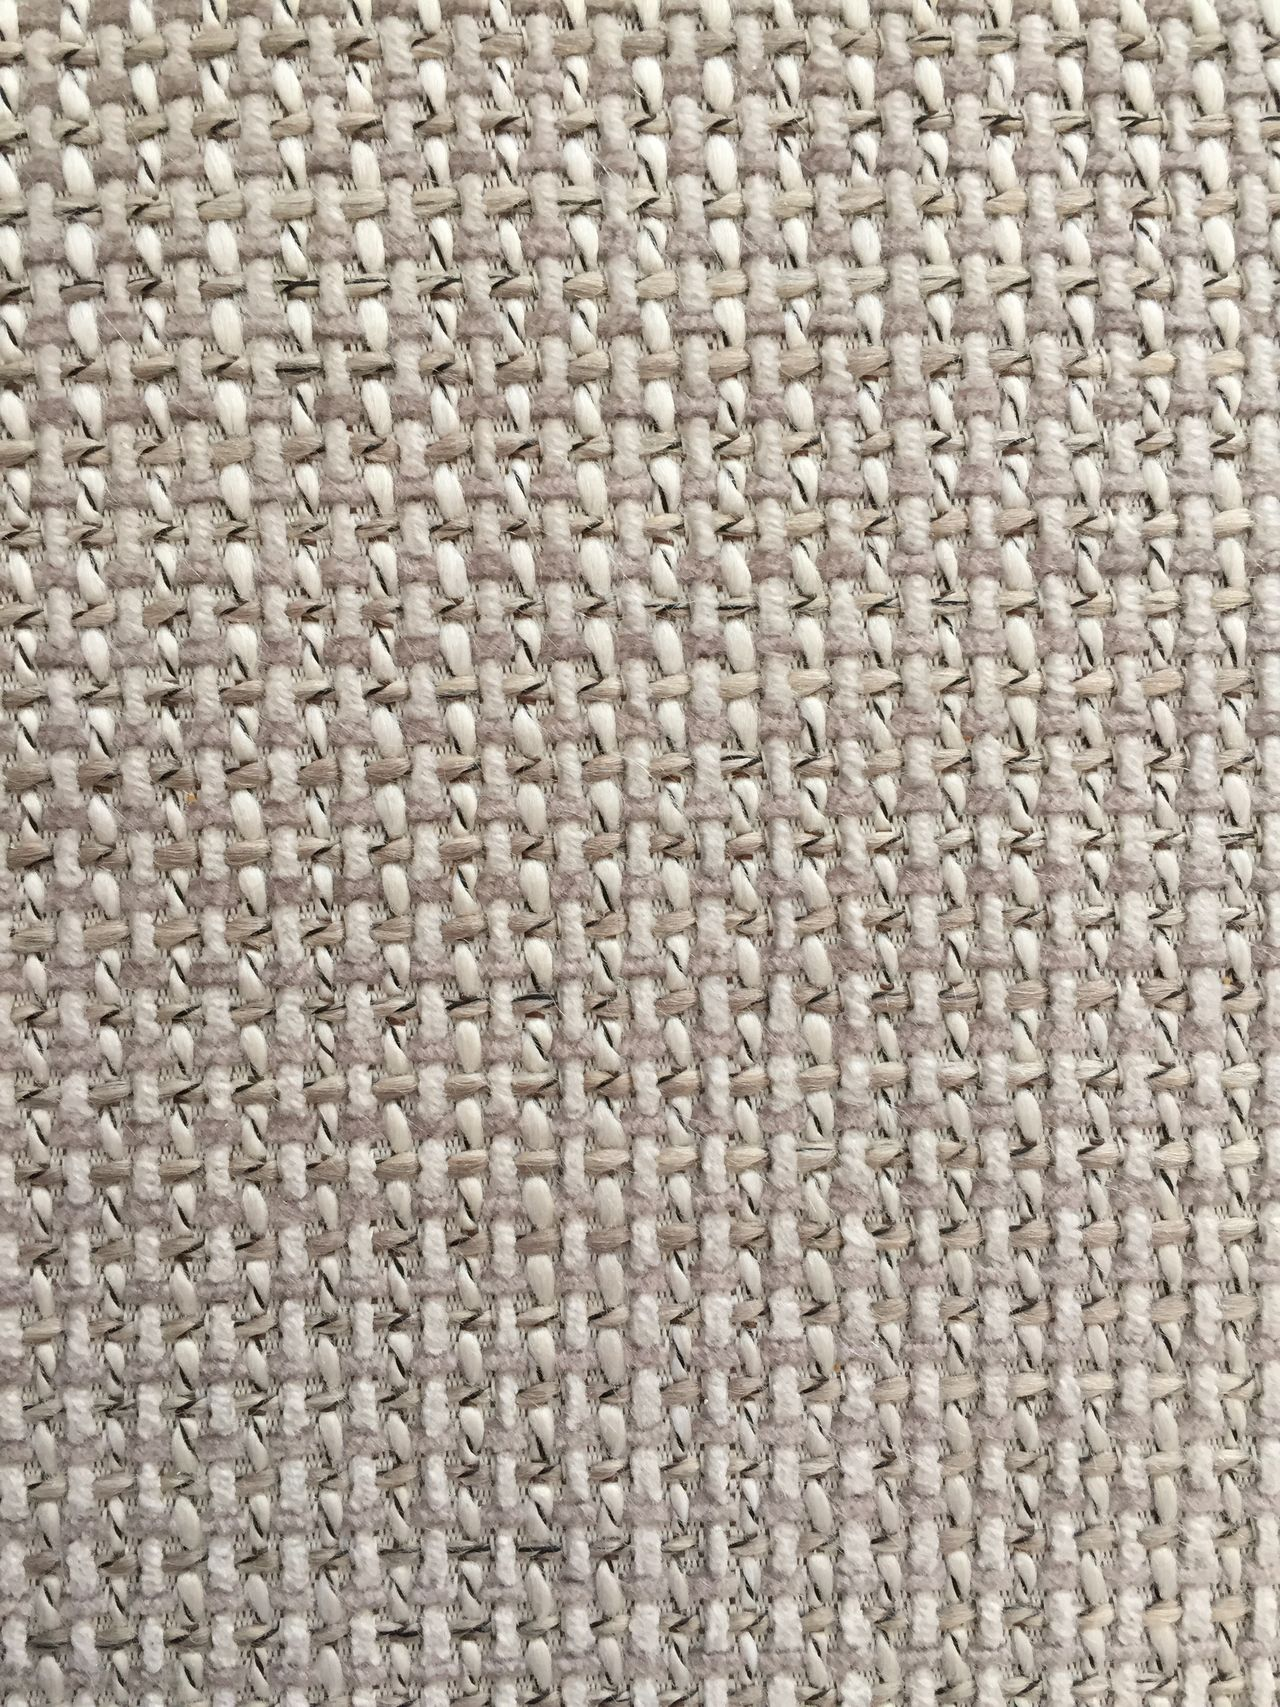 Cloth Textured  Backgrounds Pattern No People Textures And Surfaces Texture Textures Textured  Textile Textiles Texture And Surfaces Texturestyles Textil Surface Surfaces And Textures Background Web Wool Cotton Woven Woven Pattern